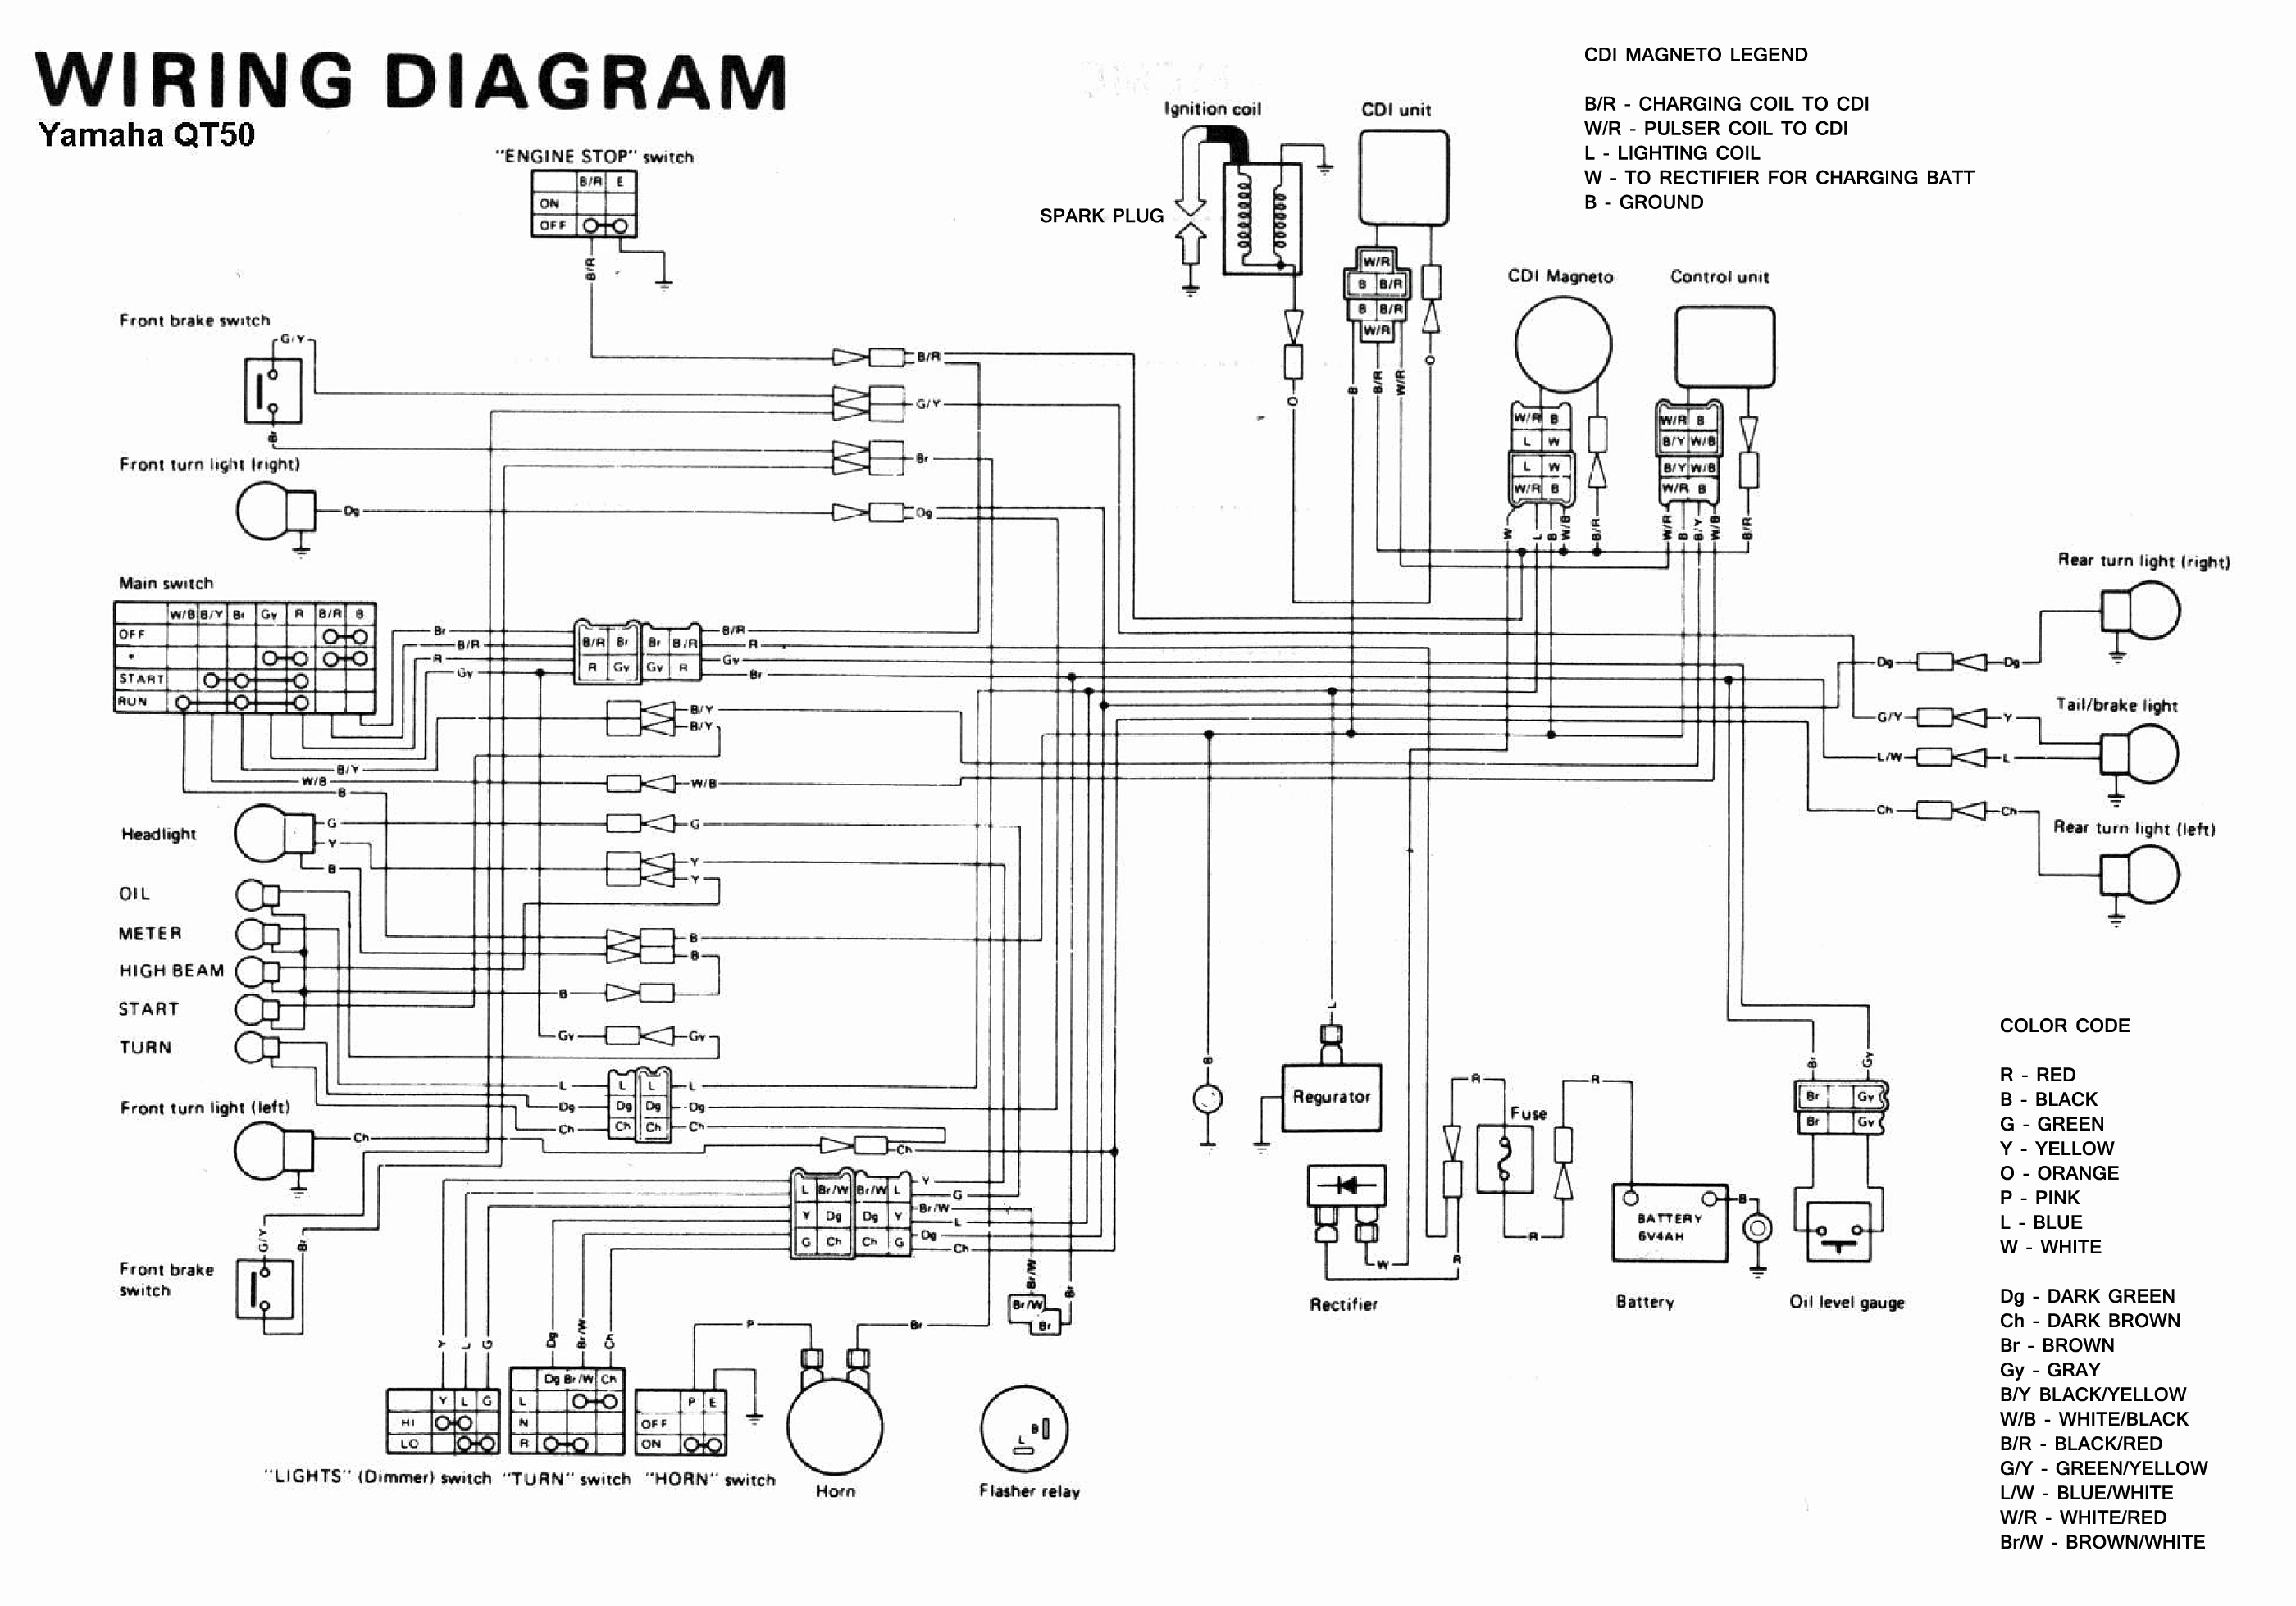 Honda Xr 600 Wiring Diagram Page 3 And Schematics Xr600r 1982 Yamaha Xt 550 1985 Xr600 Xl